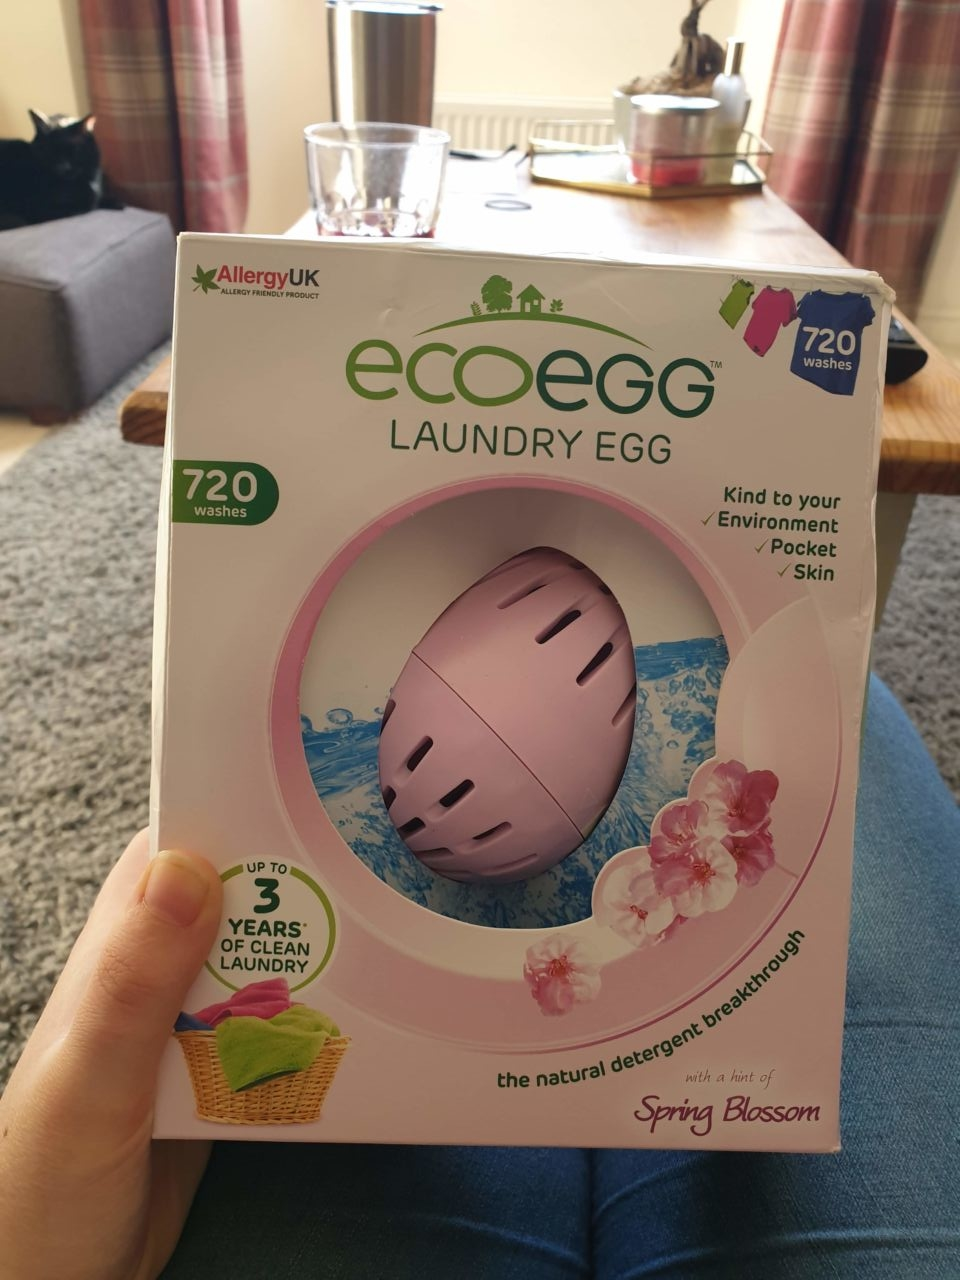 EcoEgg laundry egg for baby clothes